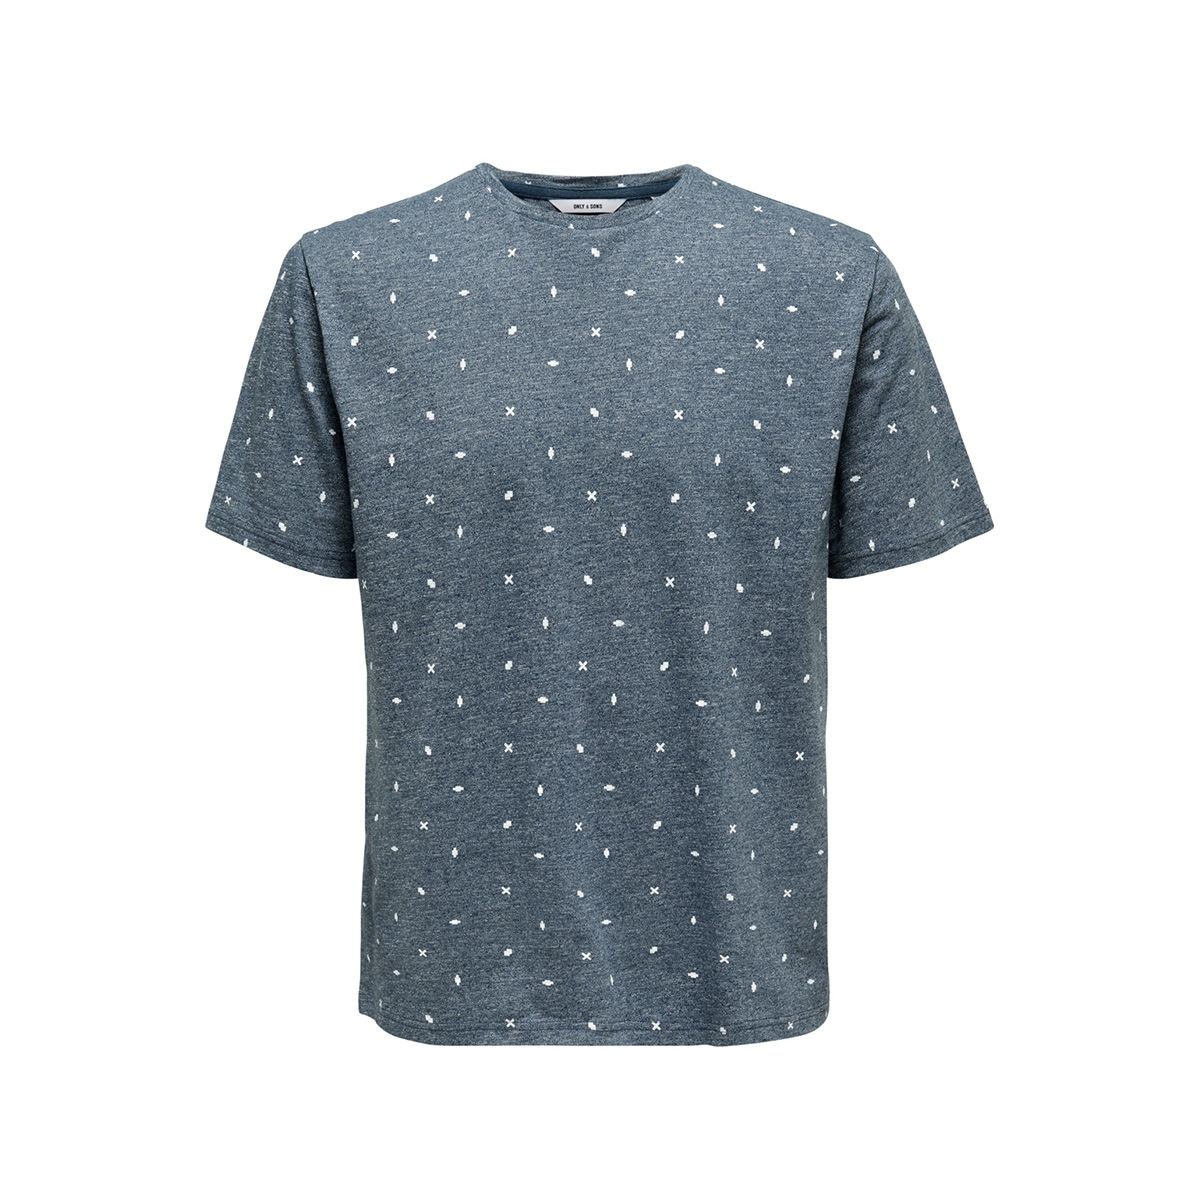 onslang ss ditsy aop tee 22012561 only & sons t-shirt majolica blue